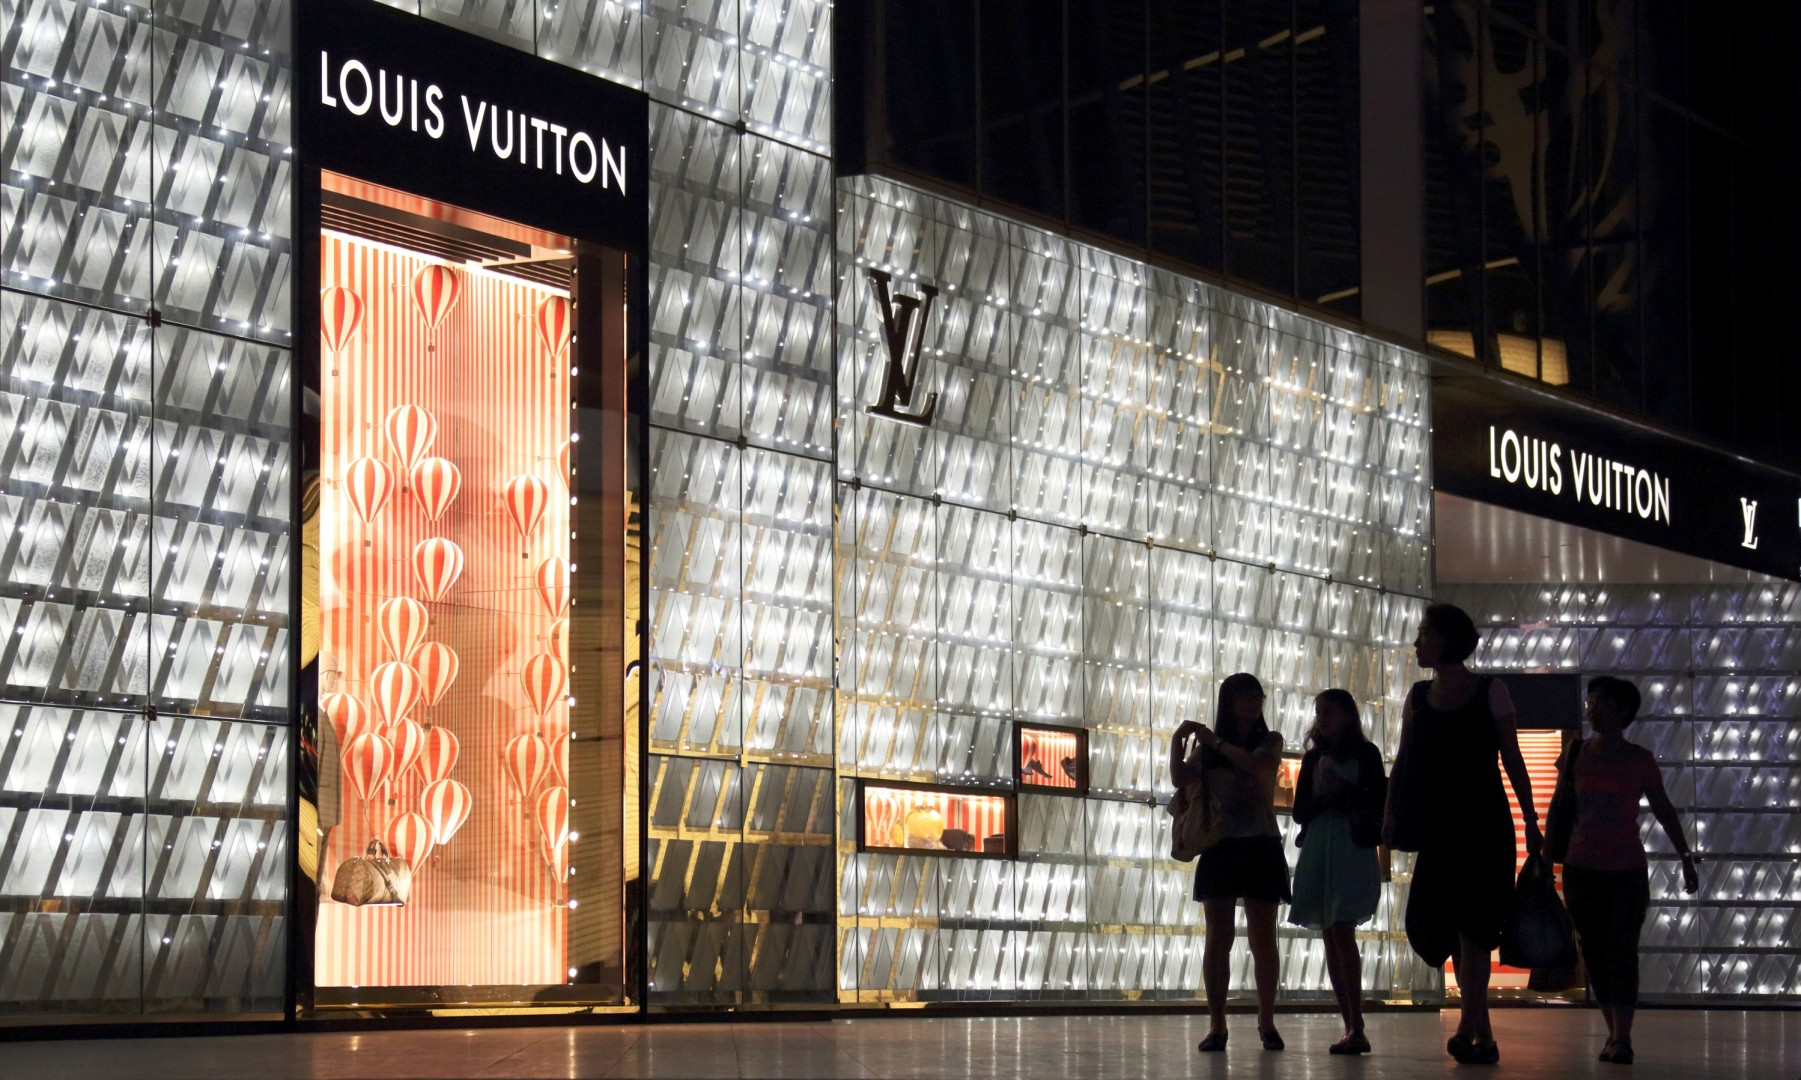 f06f73ad69b9 Just why are Louis Vuitton and other high-end retailers abandoning China